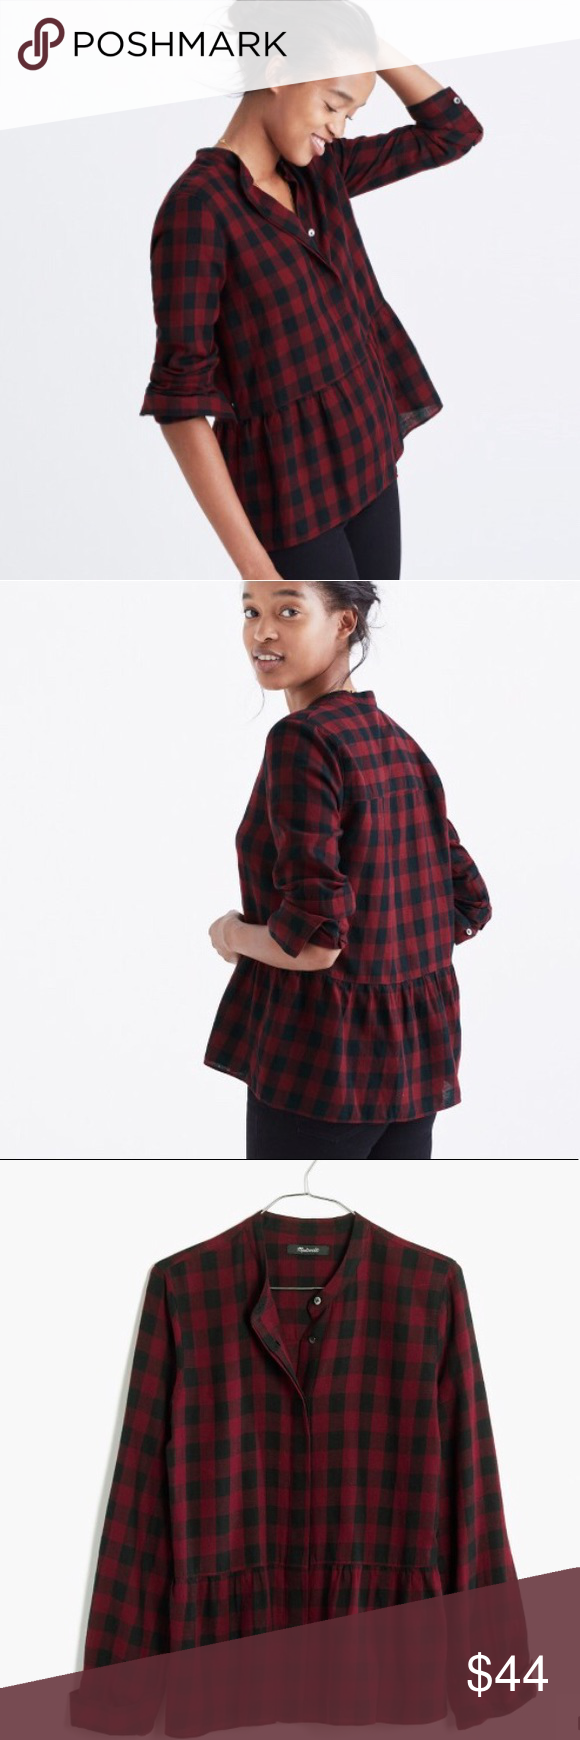 fa42d4a5a Madewell | Buffalo Check Peplum sz M EUC. No flaws, no signs of wear.  Cotton fabric. Pit to pit: 19.5in Top to hem: 23in Madewell Tops Button  Down Shirts